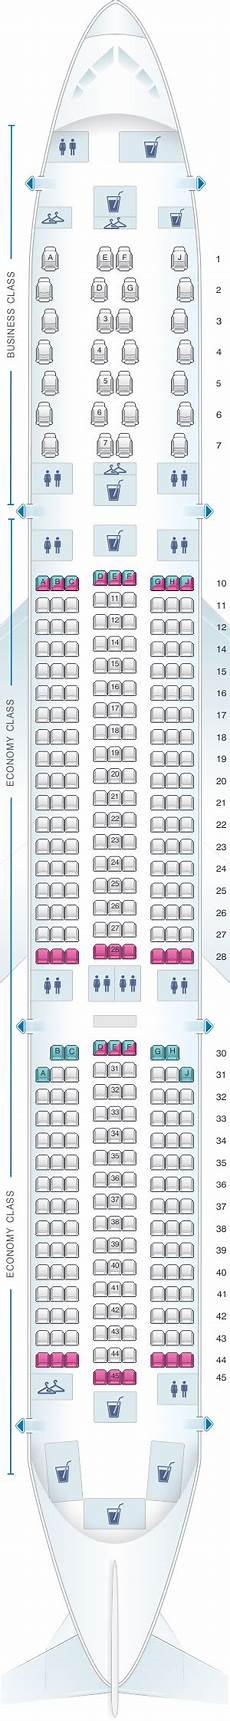 Airbus A350 900 Seating Chart Seat Map Air Mauritius Airbus A350 900 Seatmaestro